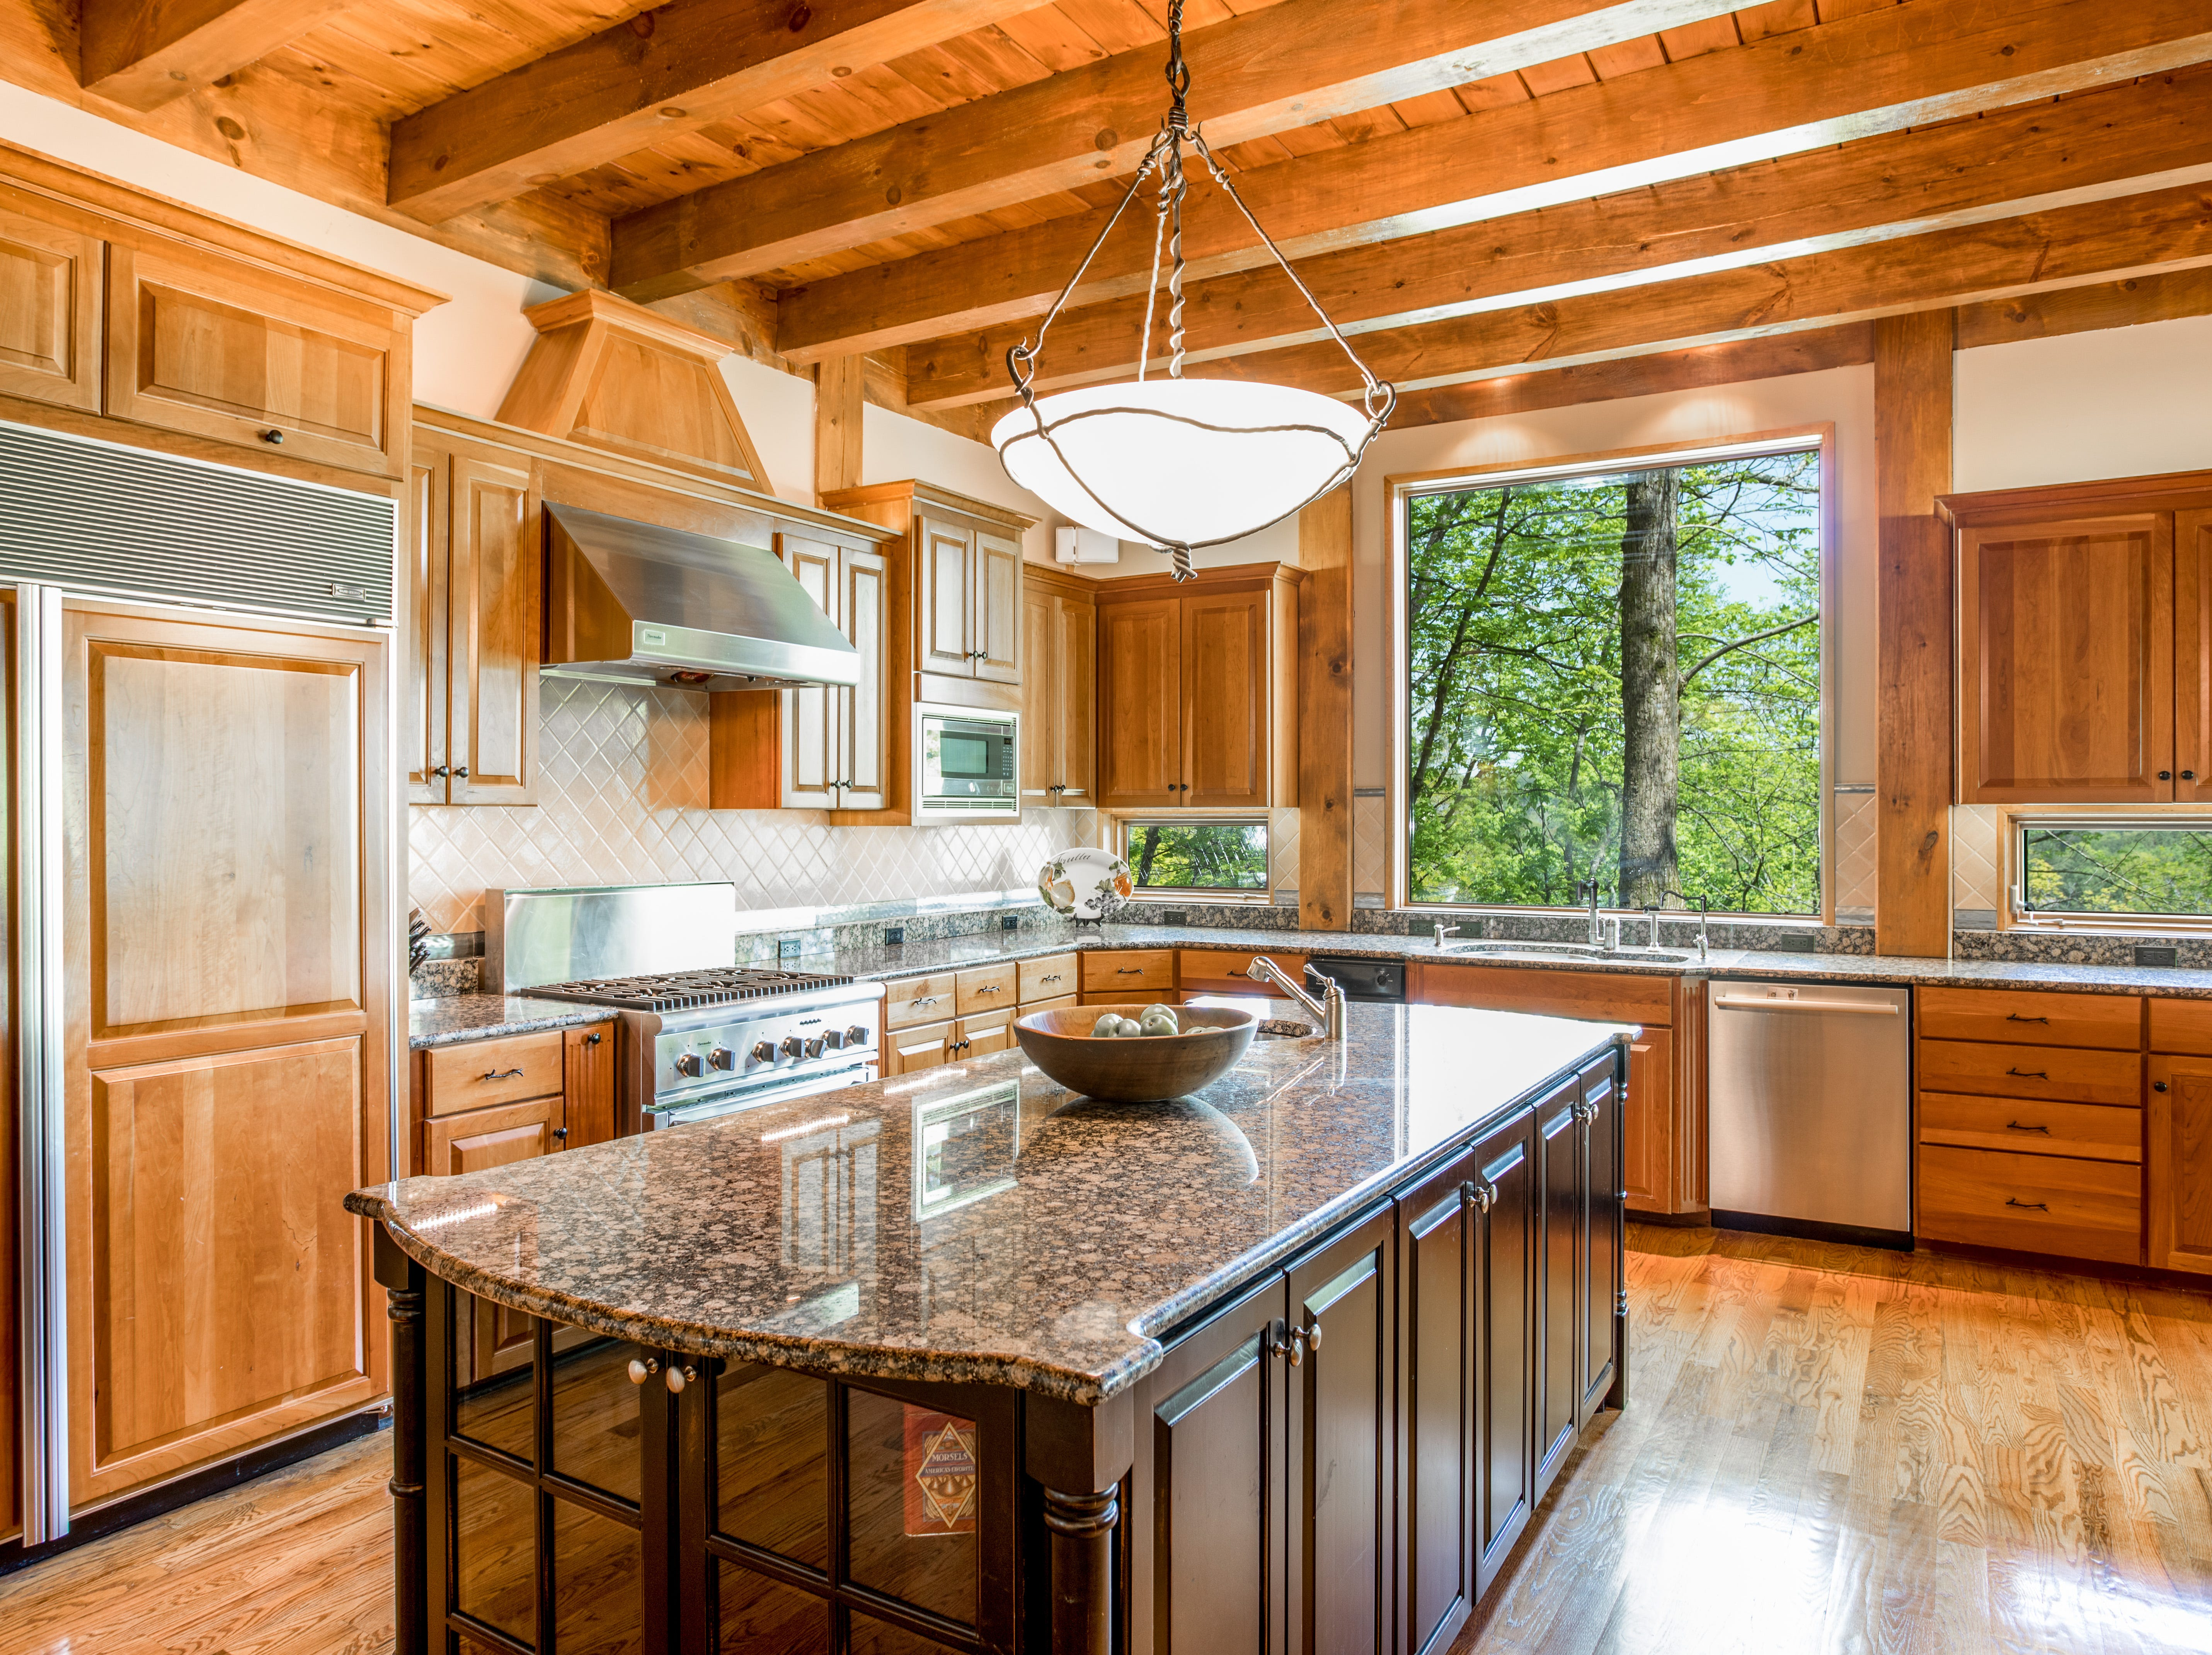 The kitchen features an oversized island and beautiful views of the surrounding land.